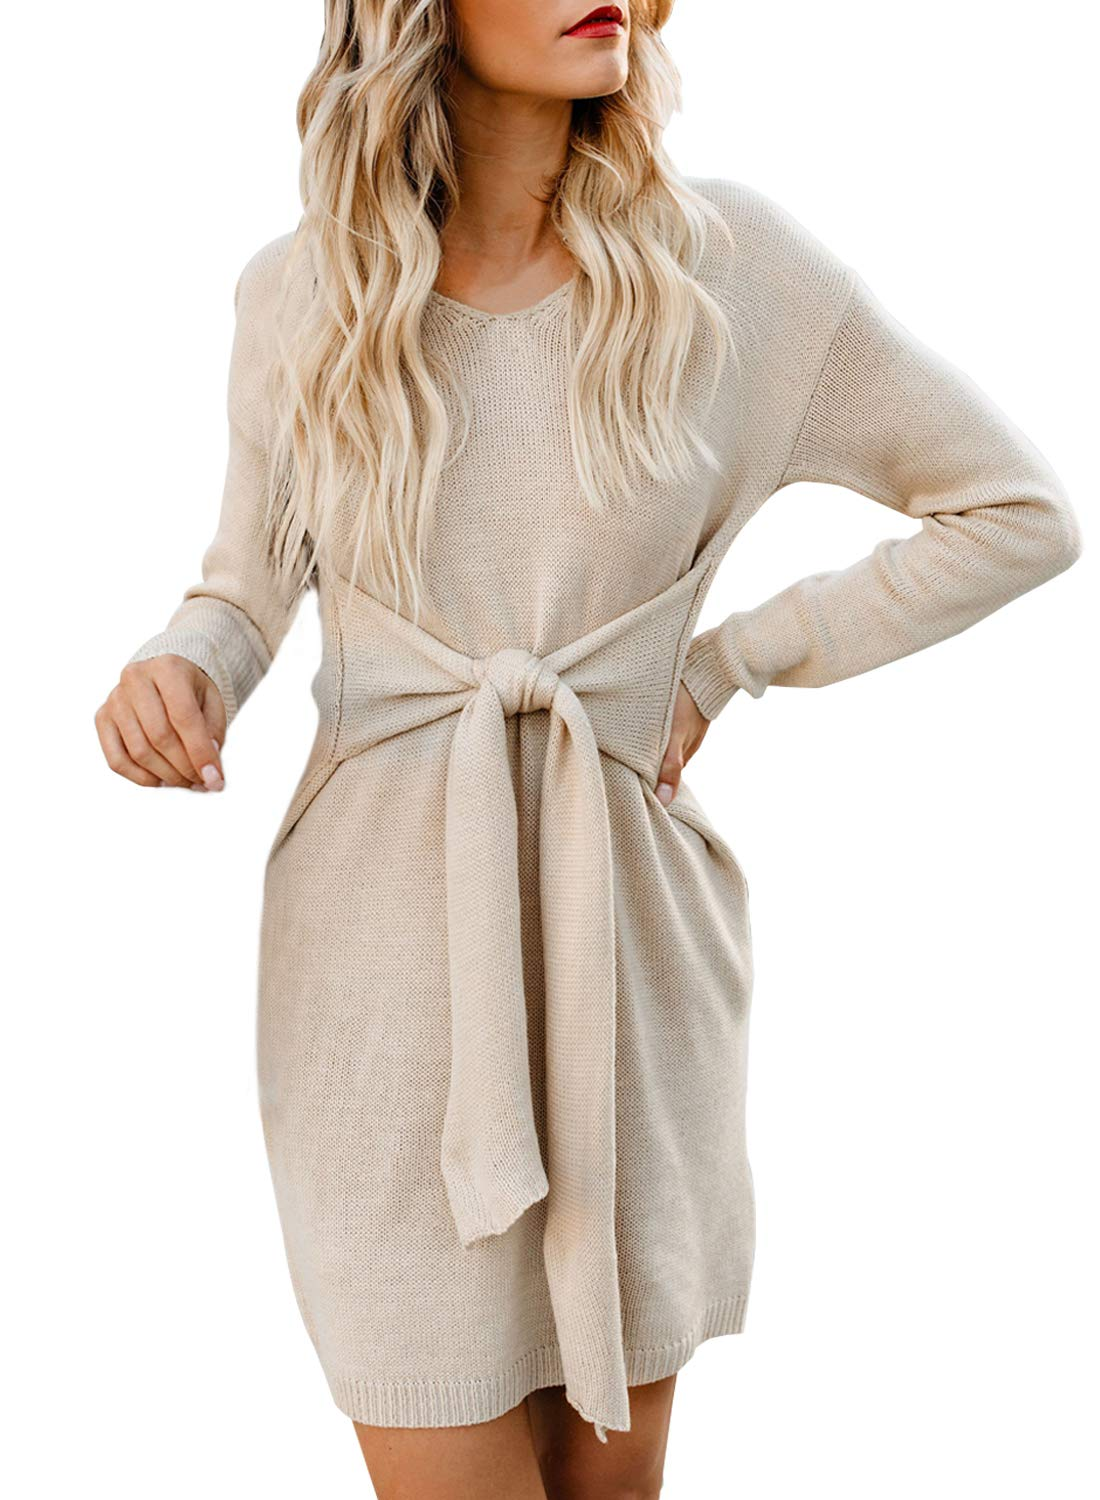 Sweater Dress - Women Cowl Neck Knit Stretchable Elasticity Long Sleeve Slim Fit Sweater Dress